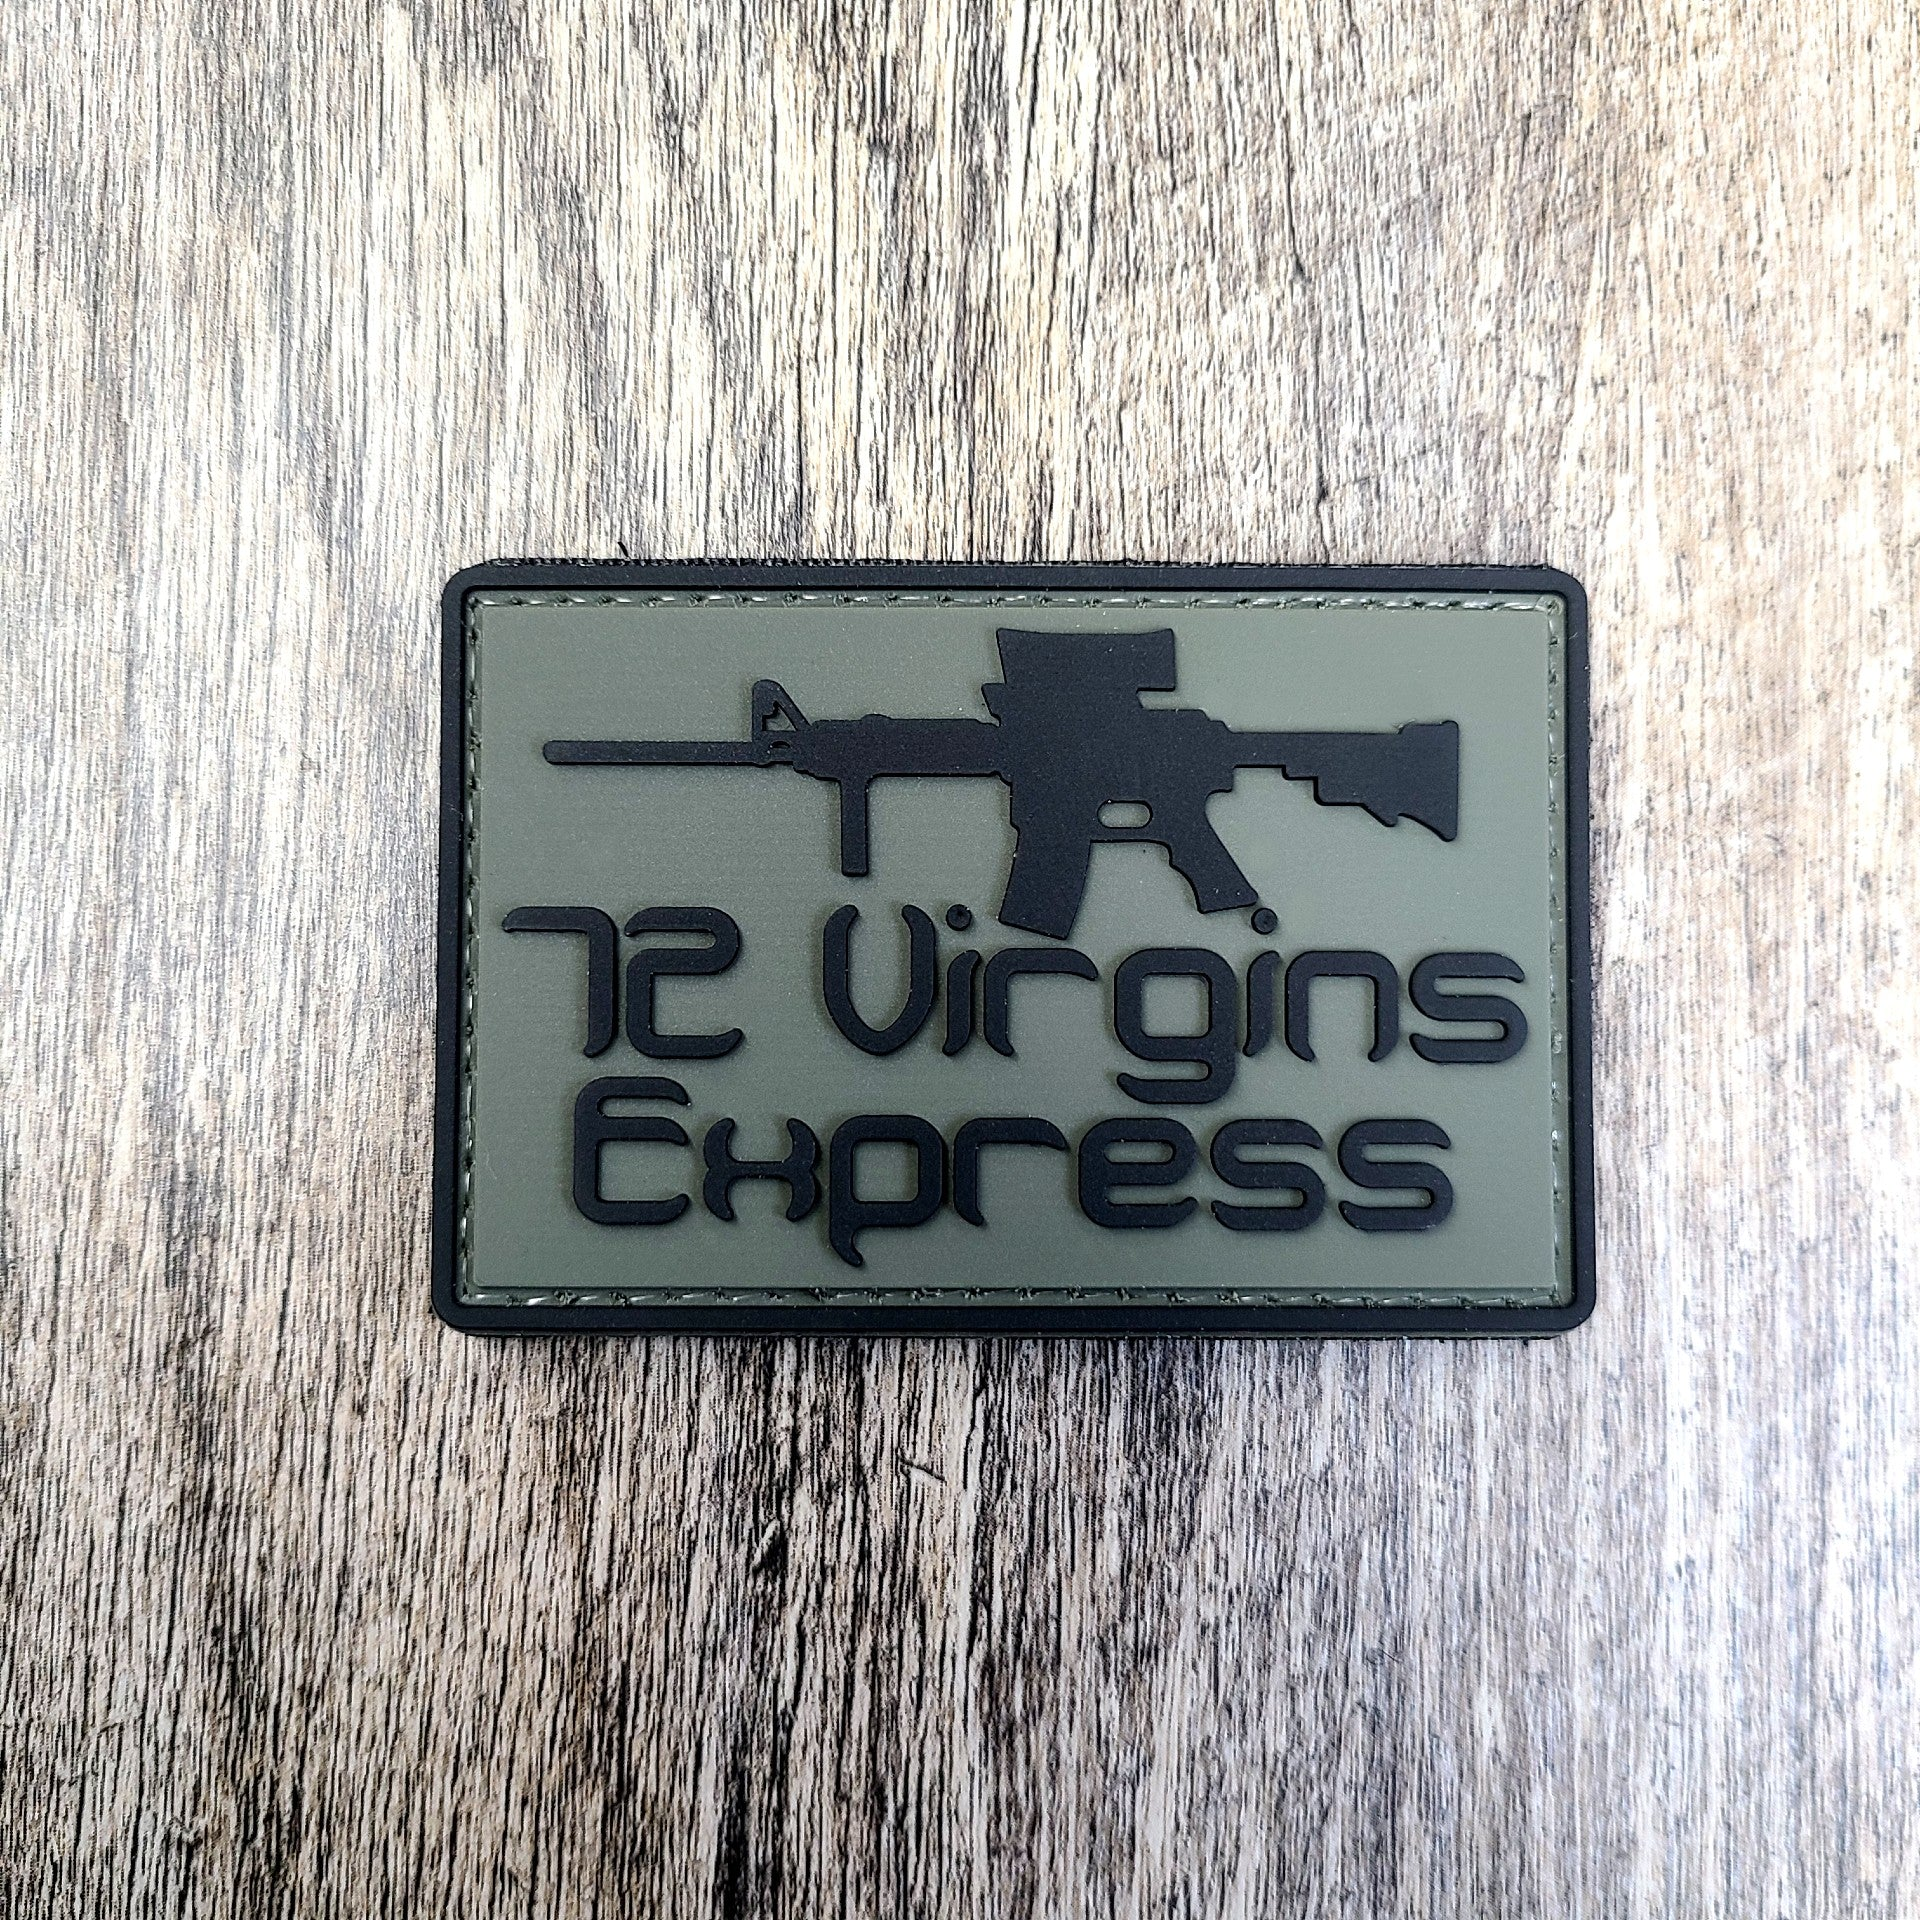 72 Virgins Express PVC Morale Patch